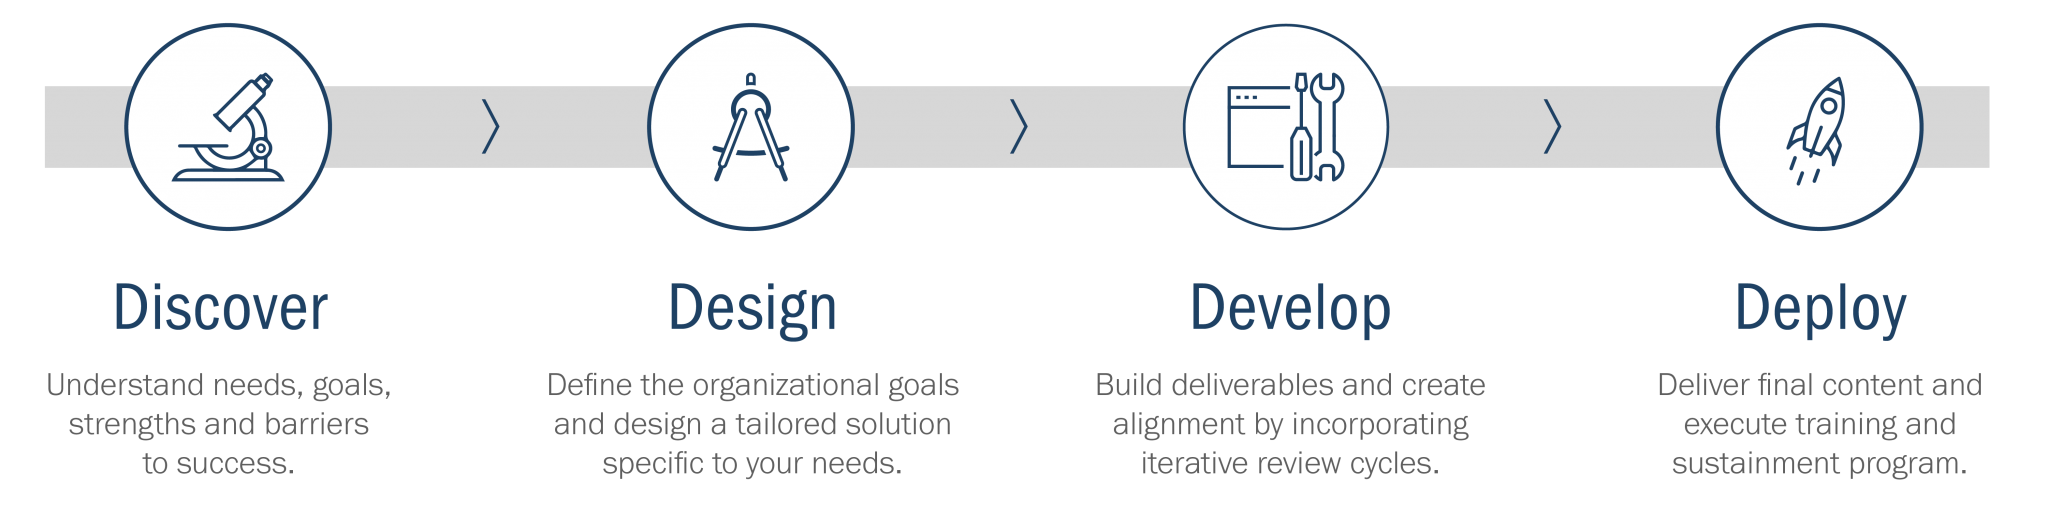 Custom Learning Solutions project timeline: Discover, Design, Develop and Deploy